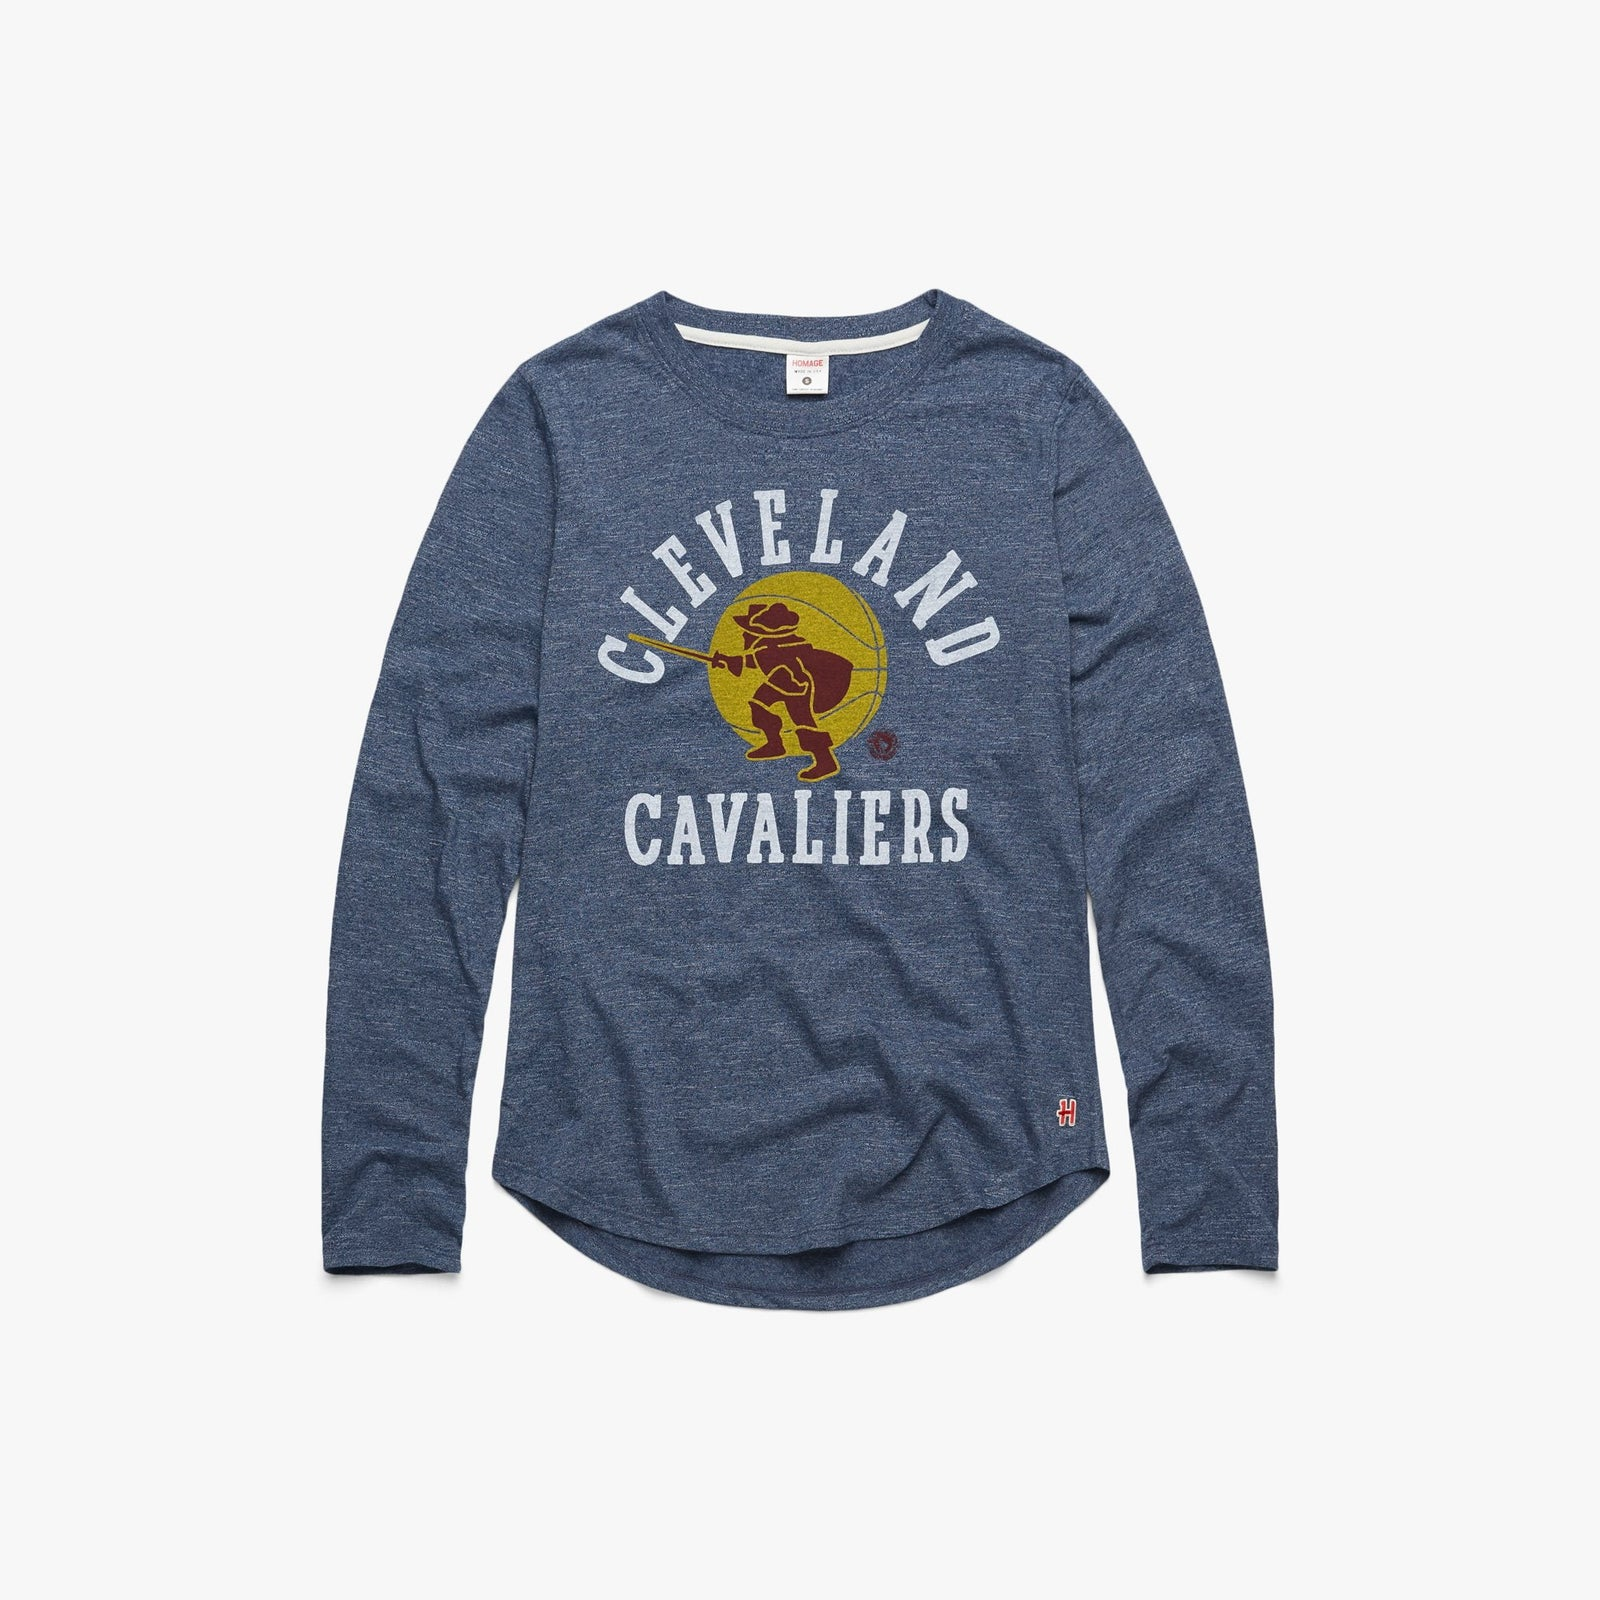 Women's Cavaliers Sir CC Long Sleeve Tee